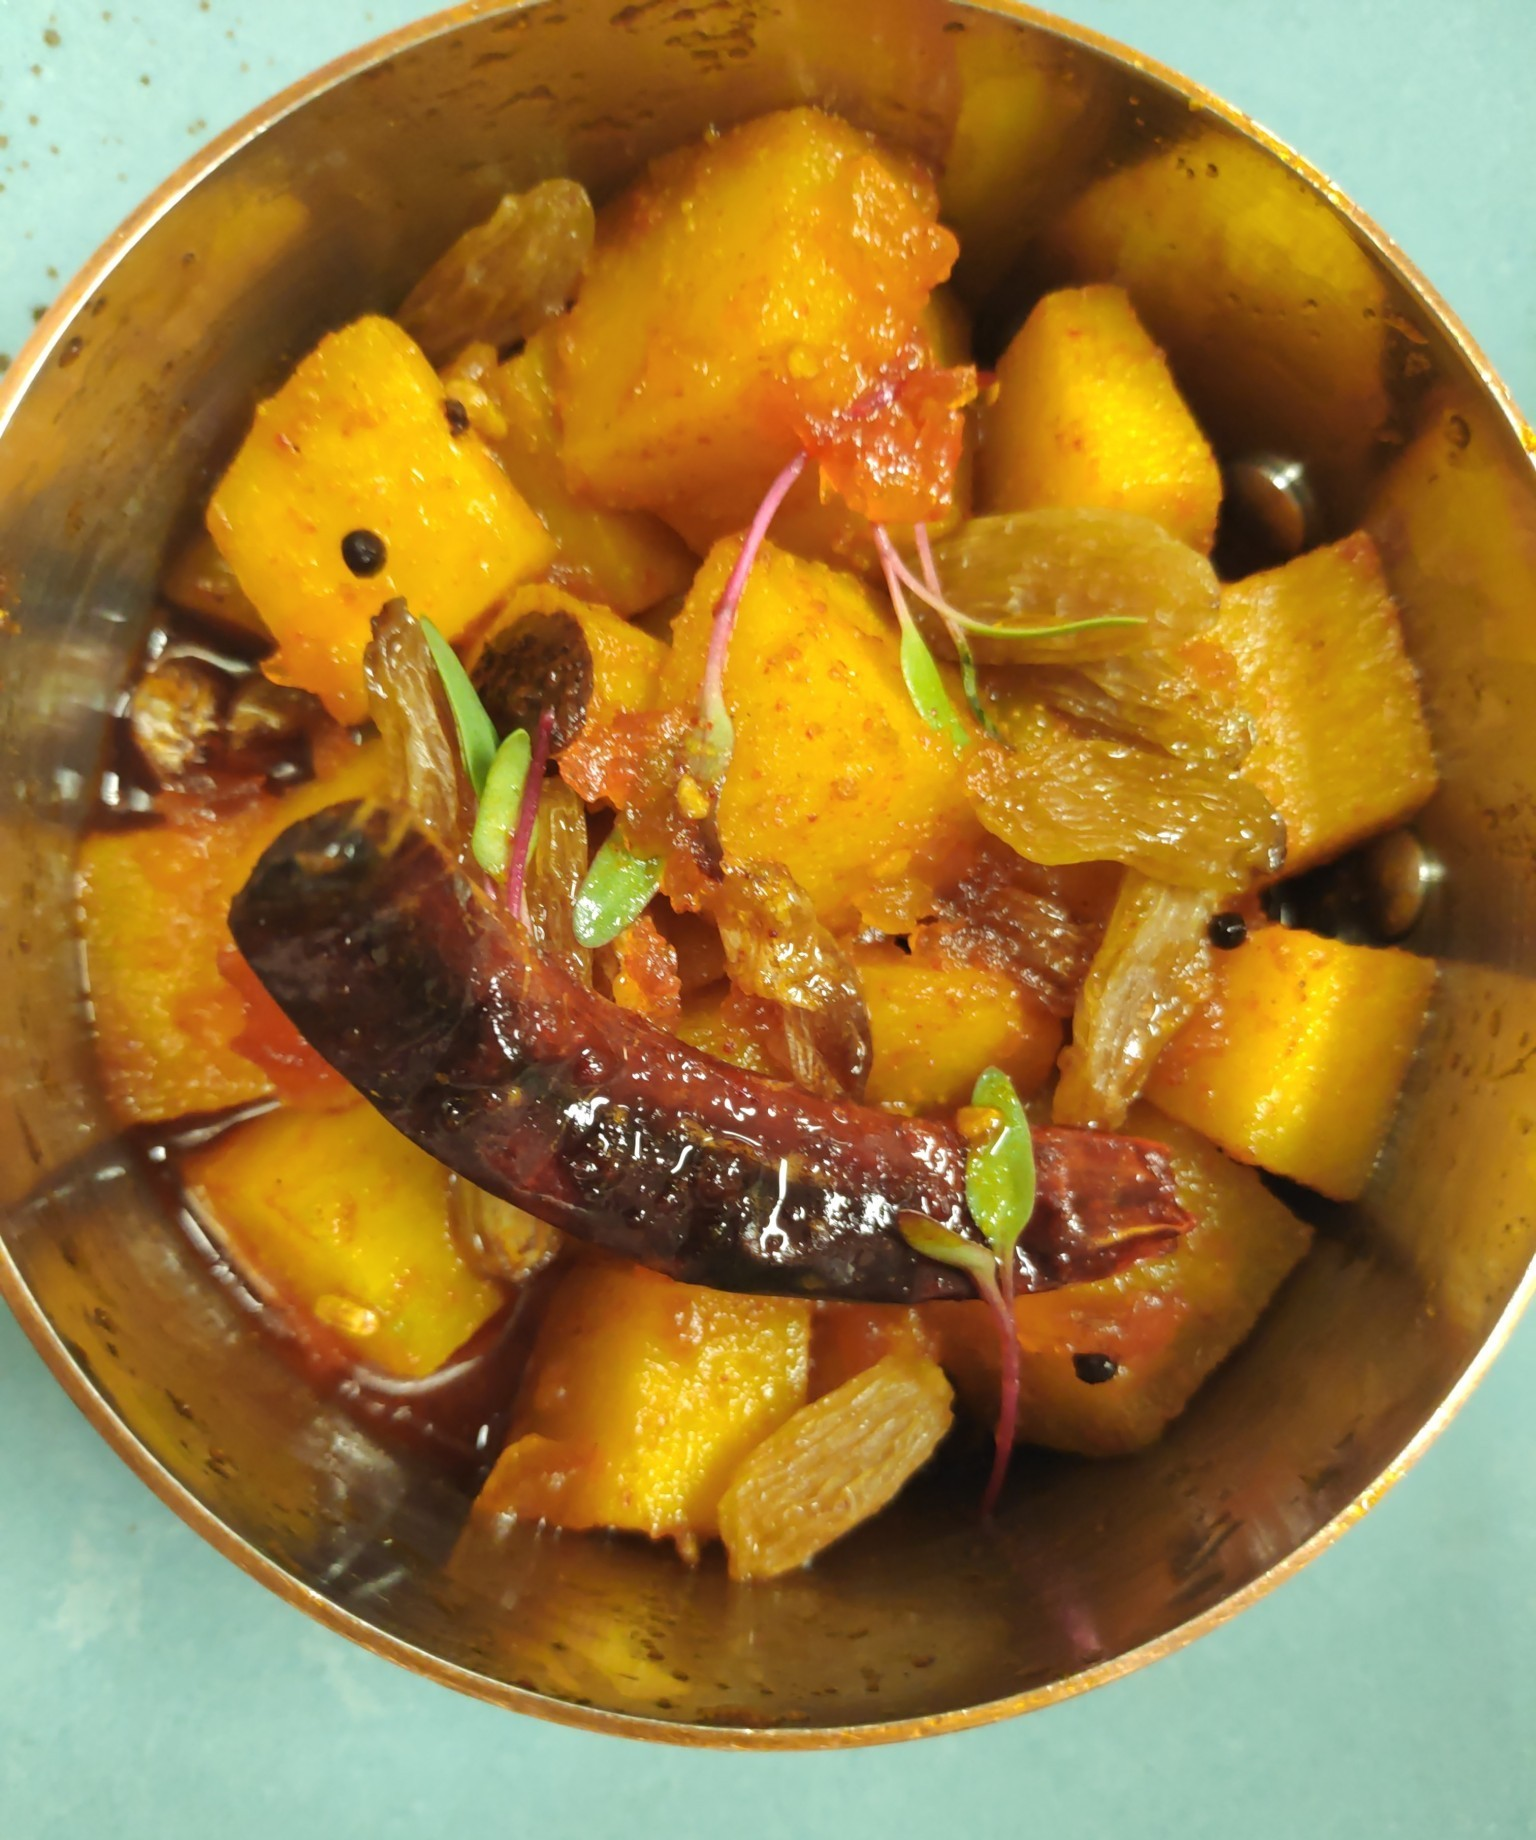 Kaddu ki sabzi or pumpkin curry